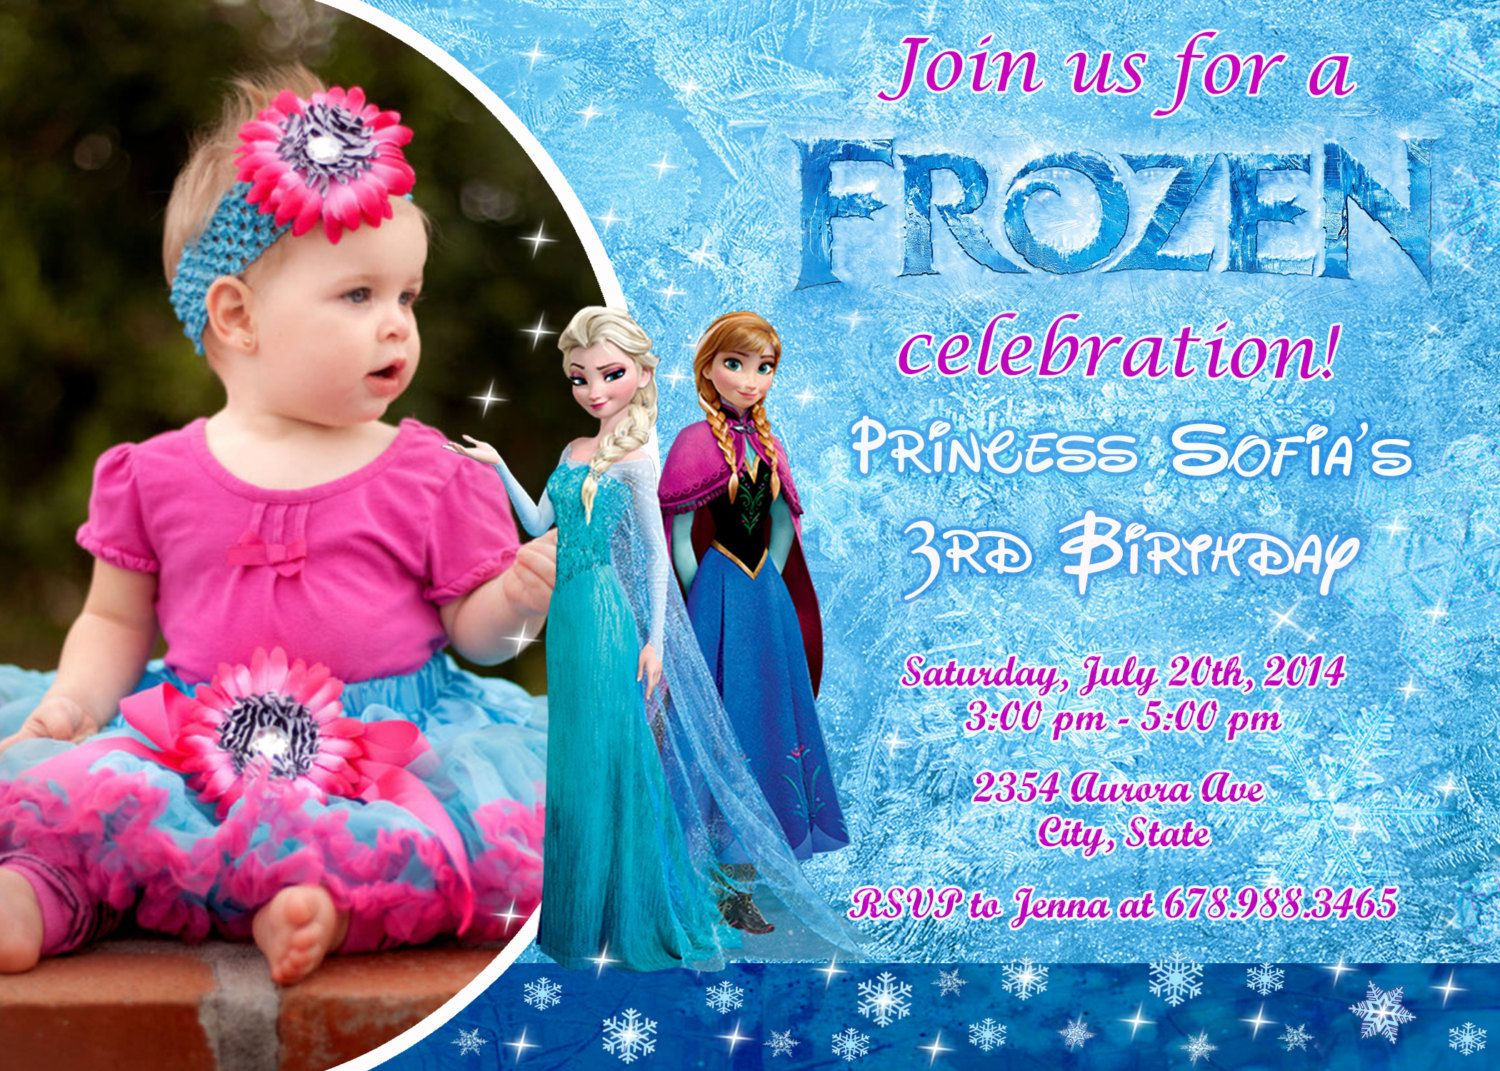 Free Disney Frozen Birthday Invitations ~ Disney frozen birthday party invitation by fantasticinvitation